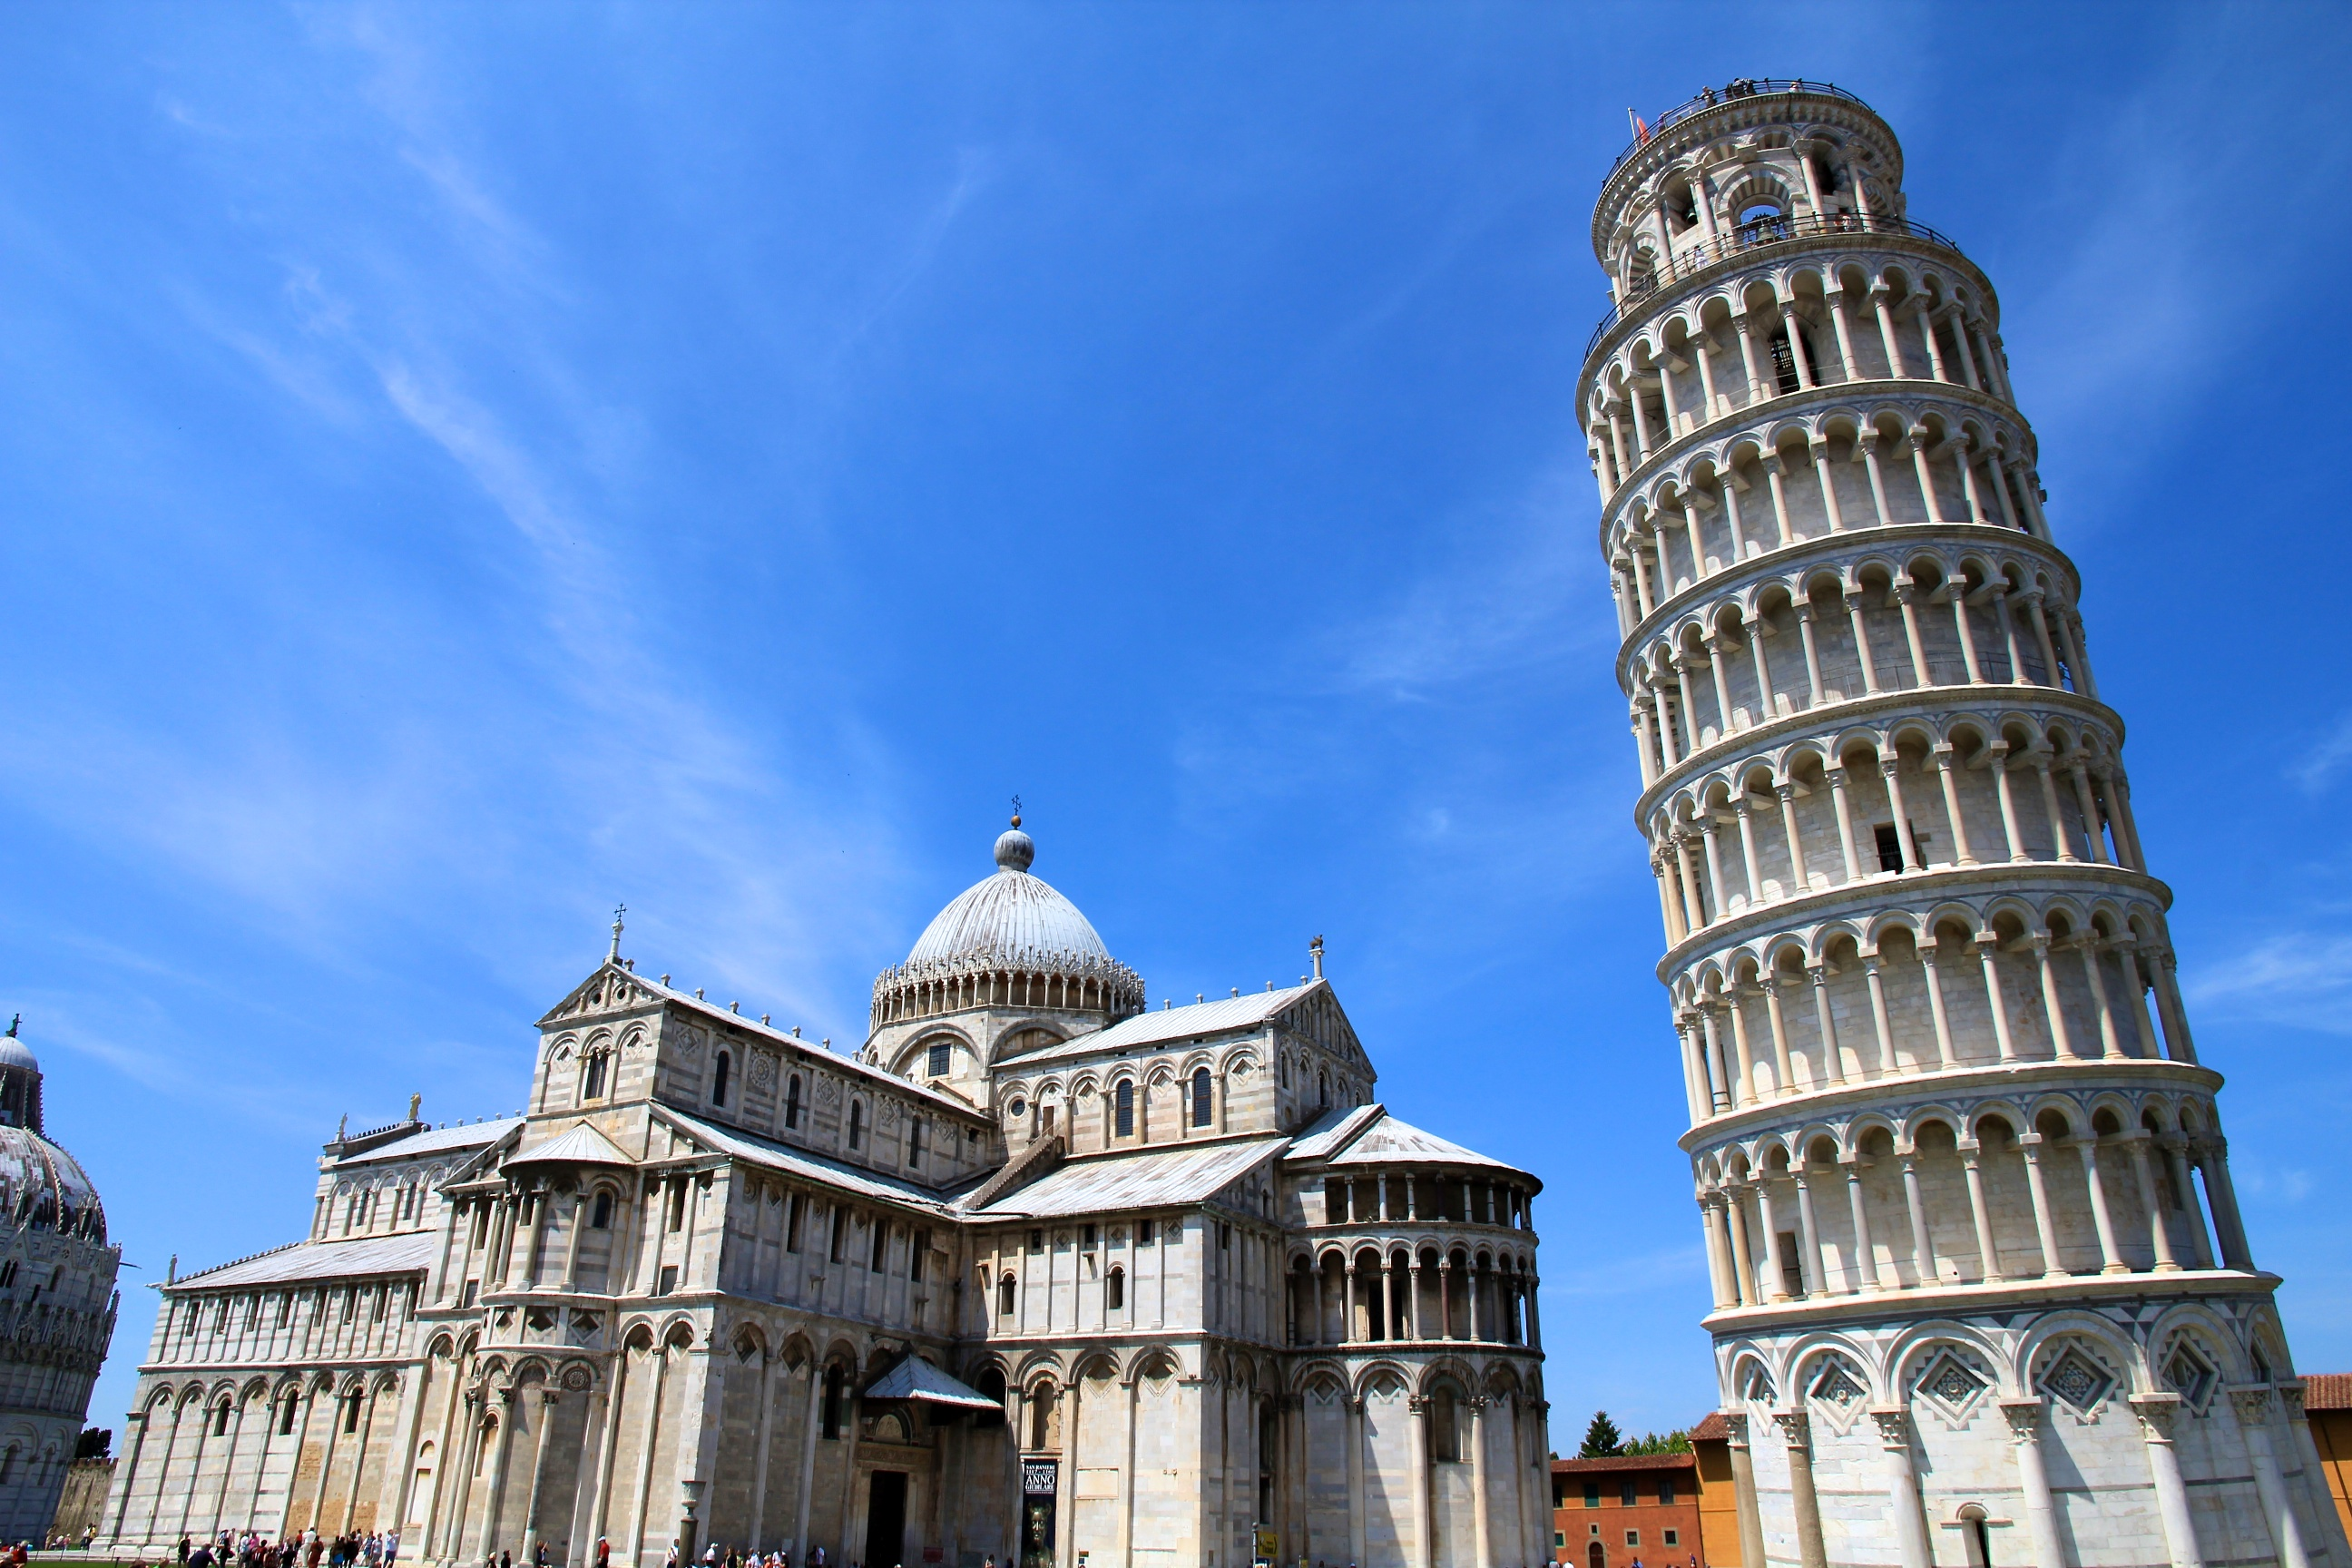 europe-leaning-tower-of-pisa.jpg